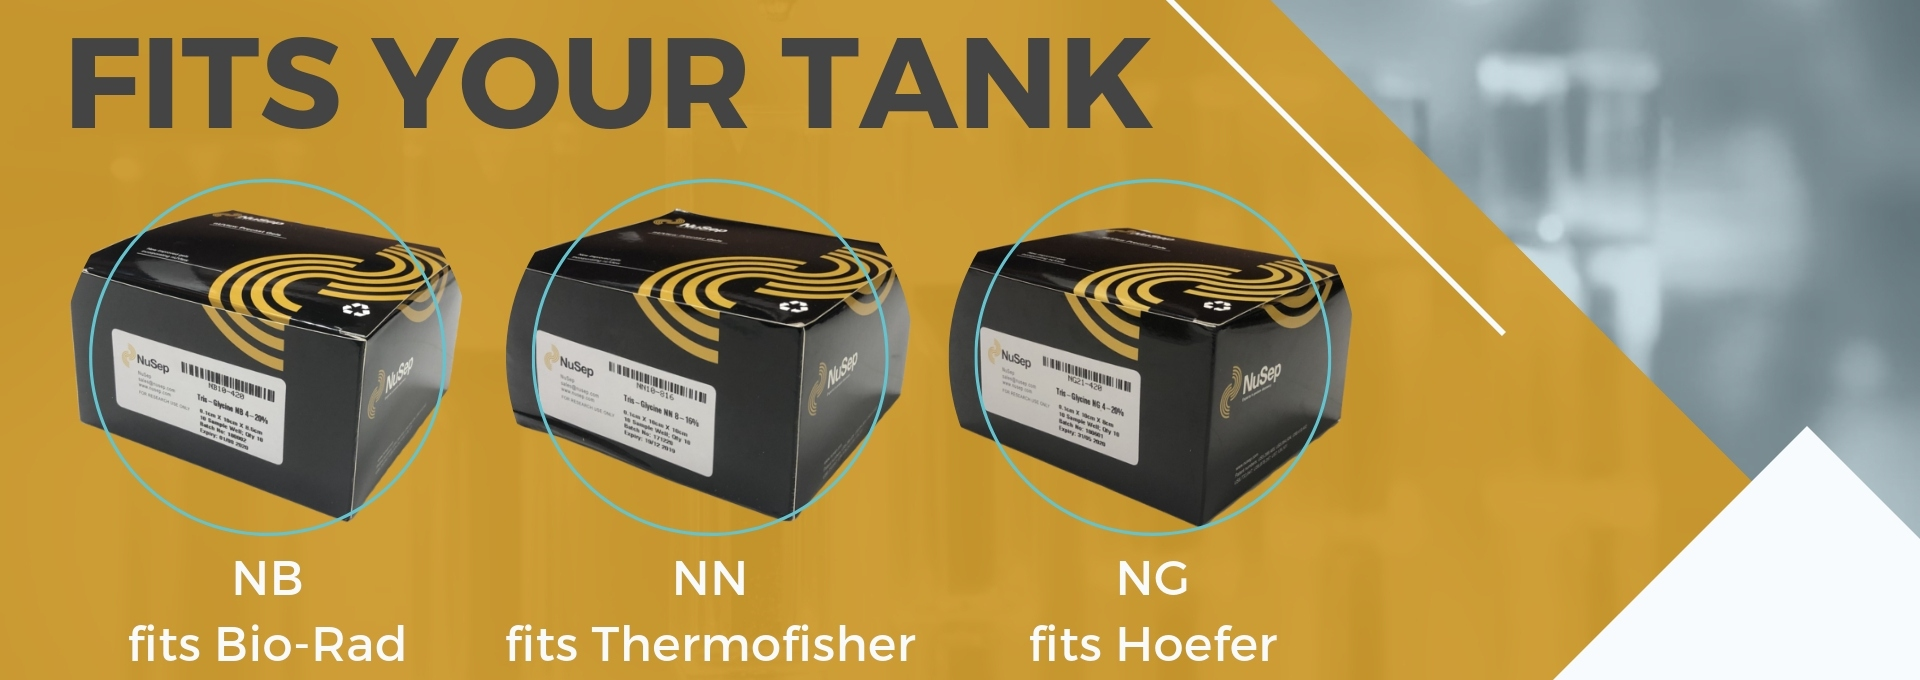 Precast Gel that fits your tank - NB, NG, NN